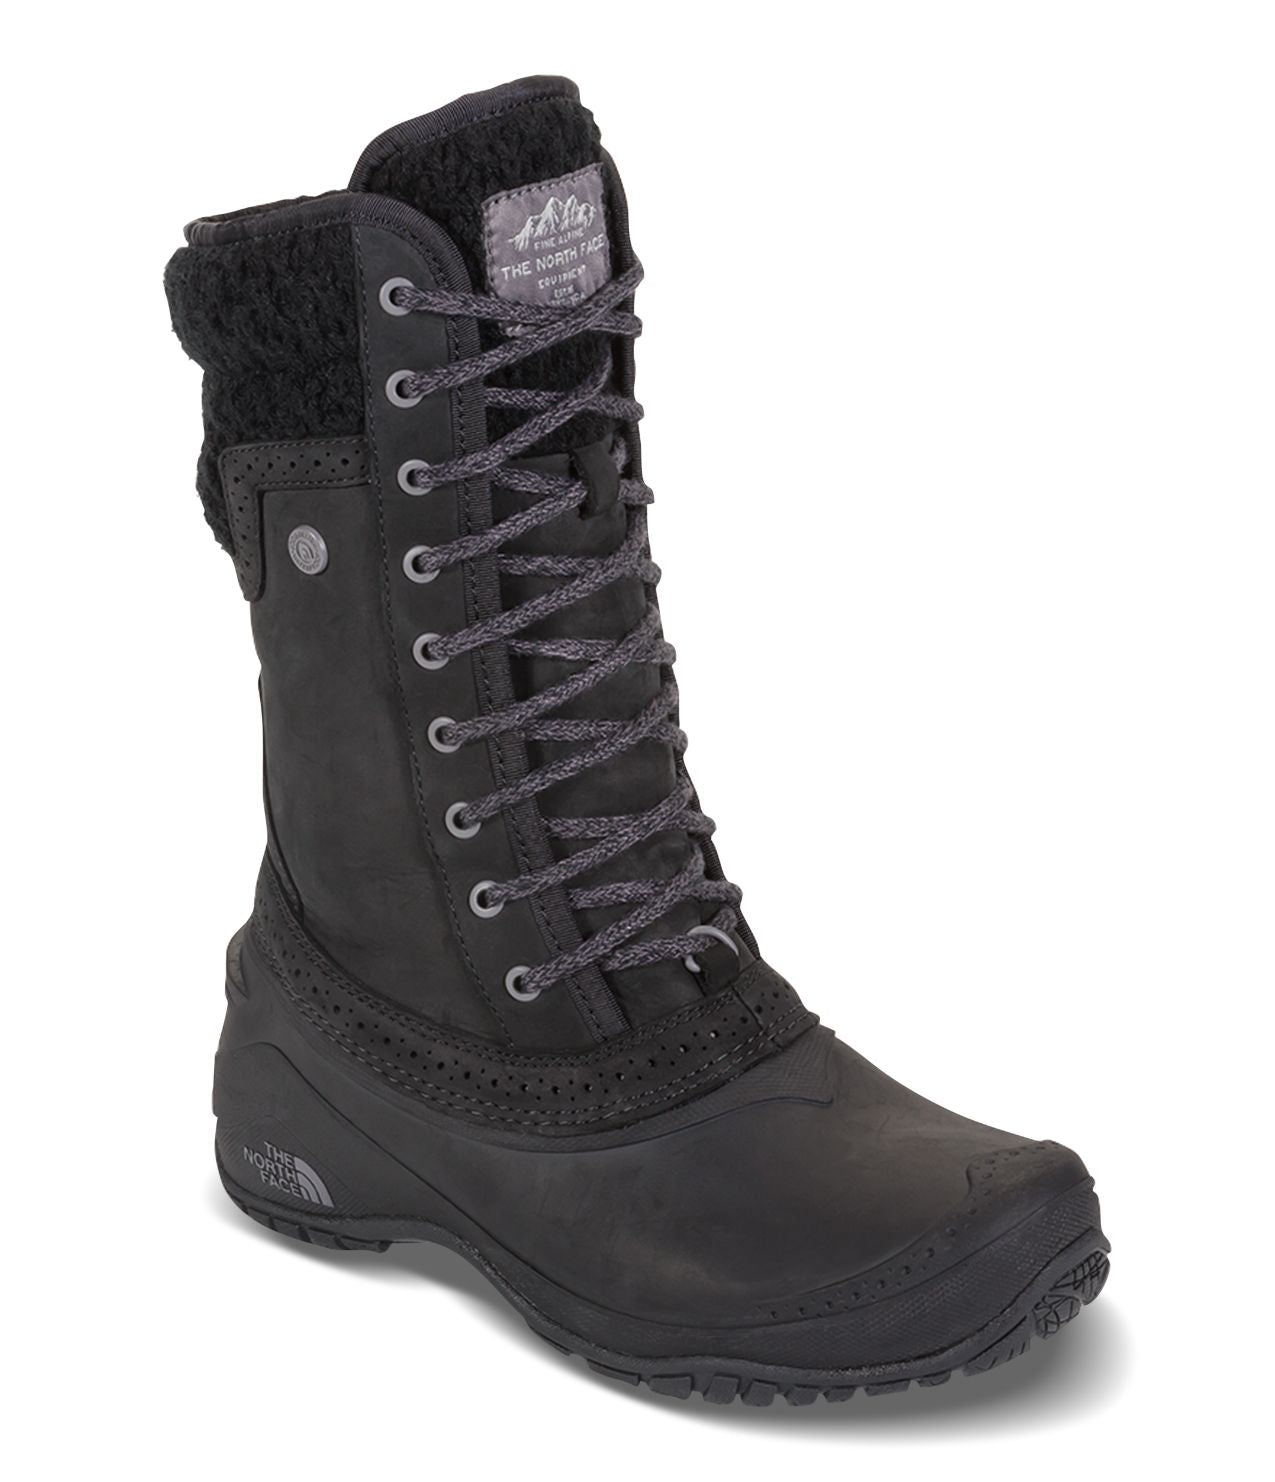 Women's Shellista II Mid - Black / Plum Kitten Grey